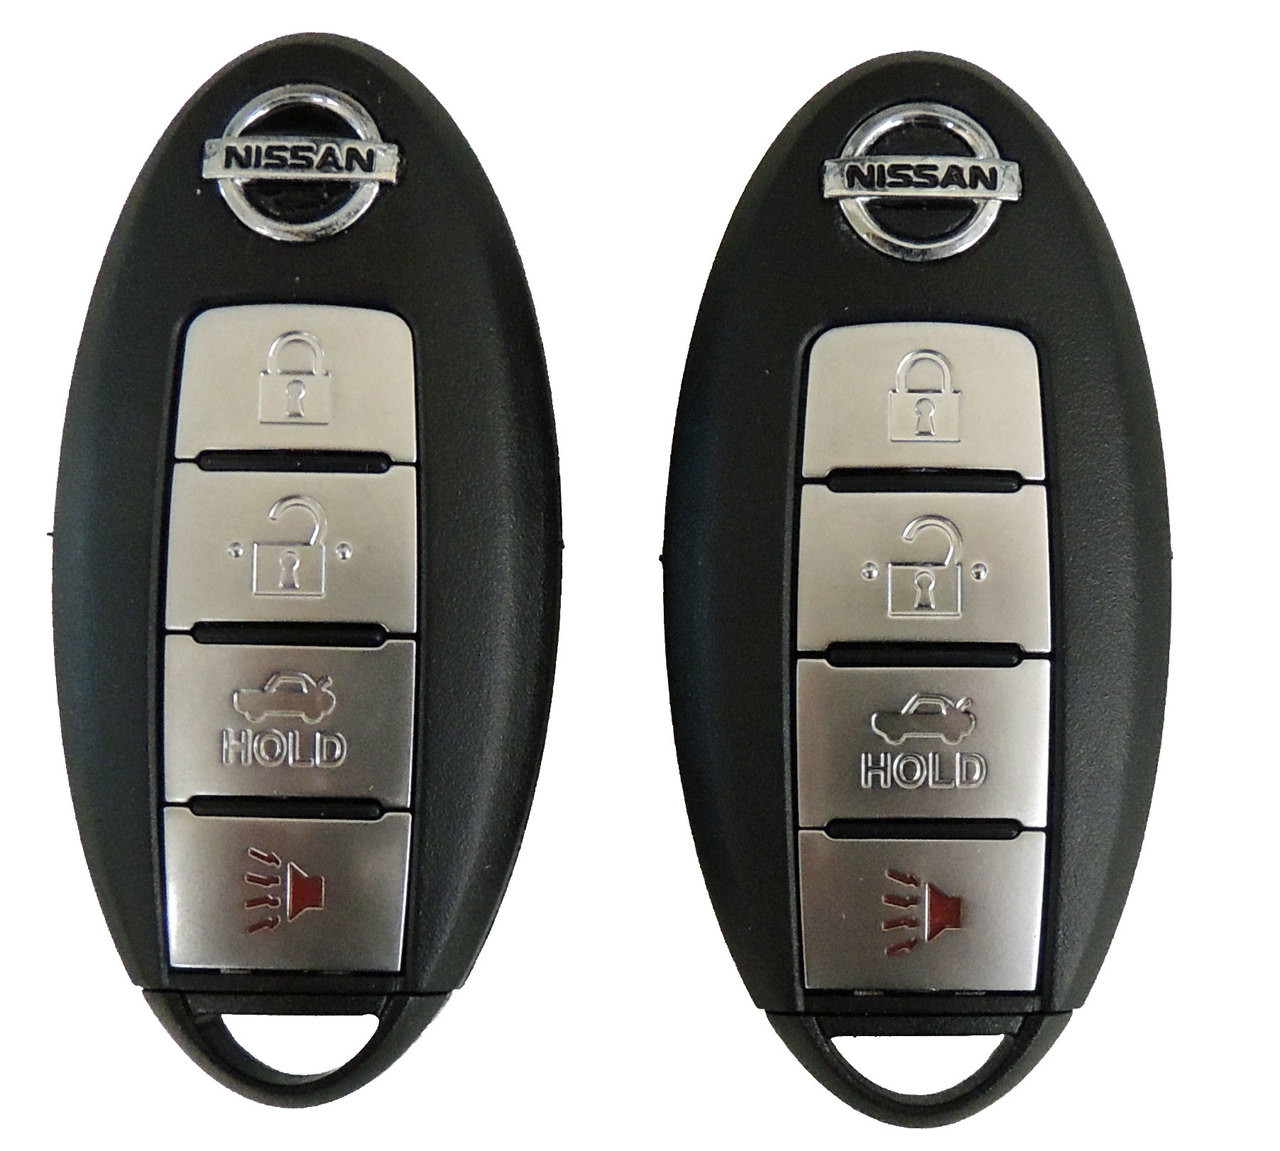 Auto Keys Replacement Gt Kia Optima Remote 4 Buttons 315mhz Remote Key